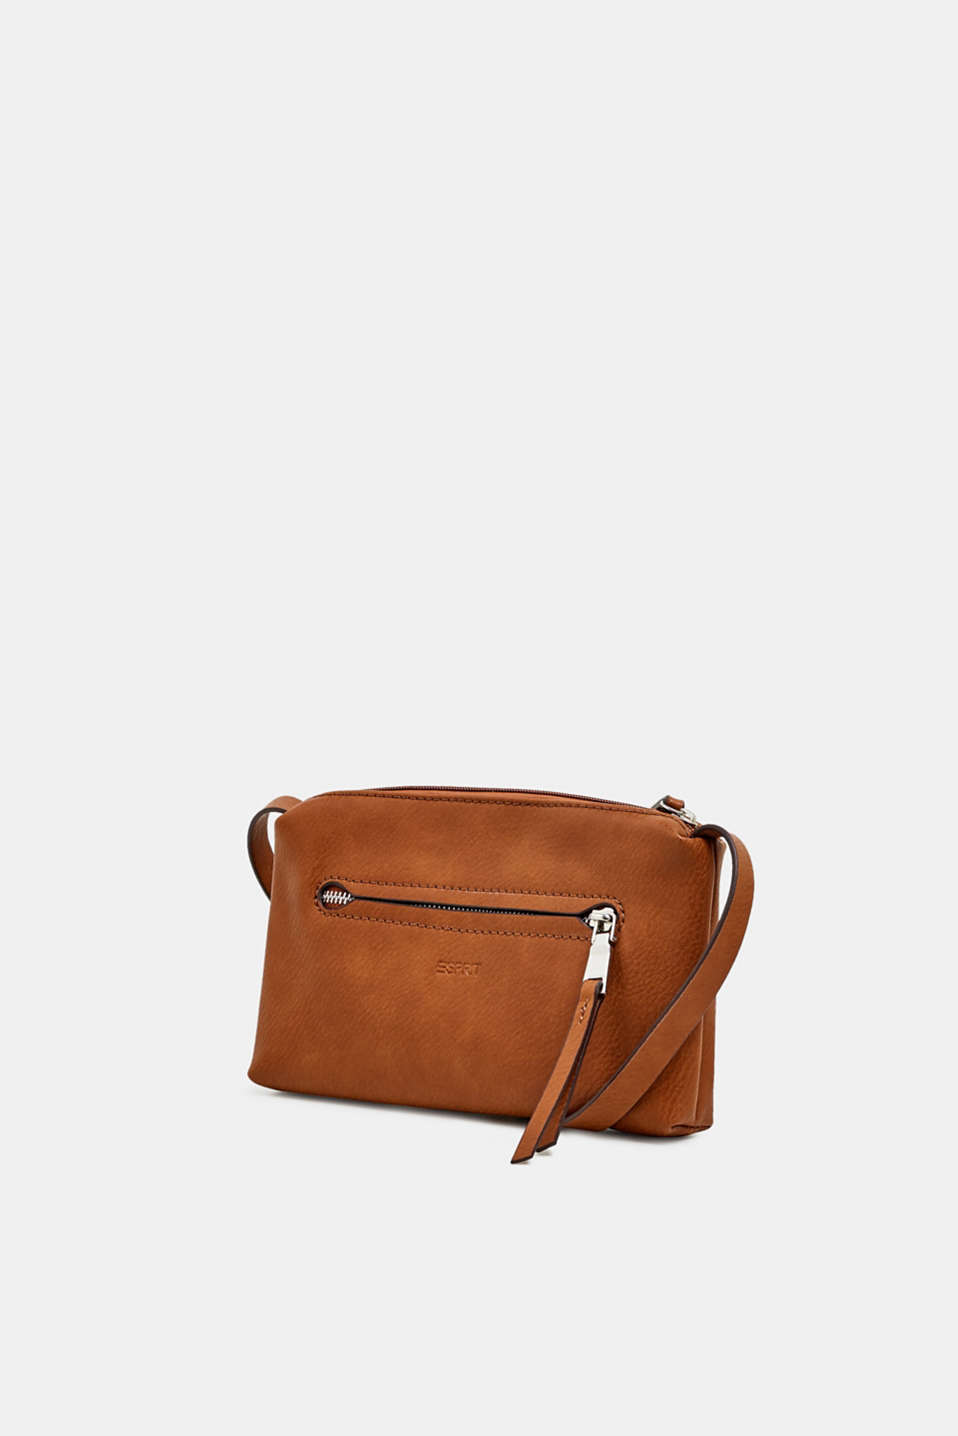 Small faux leather shoulder bag, RUST BROWN, detail image number 2